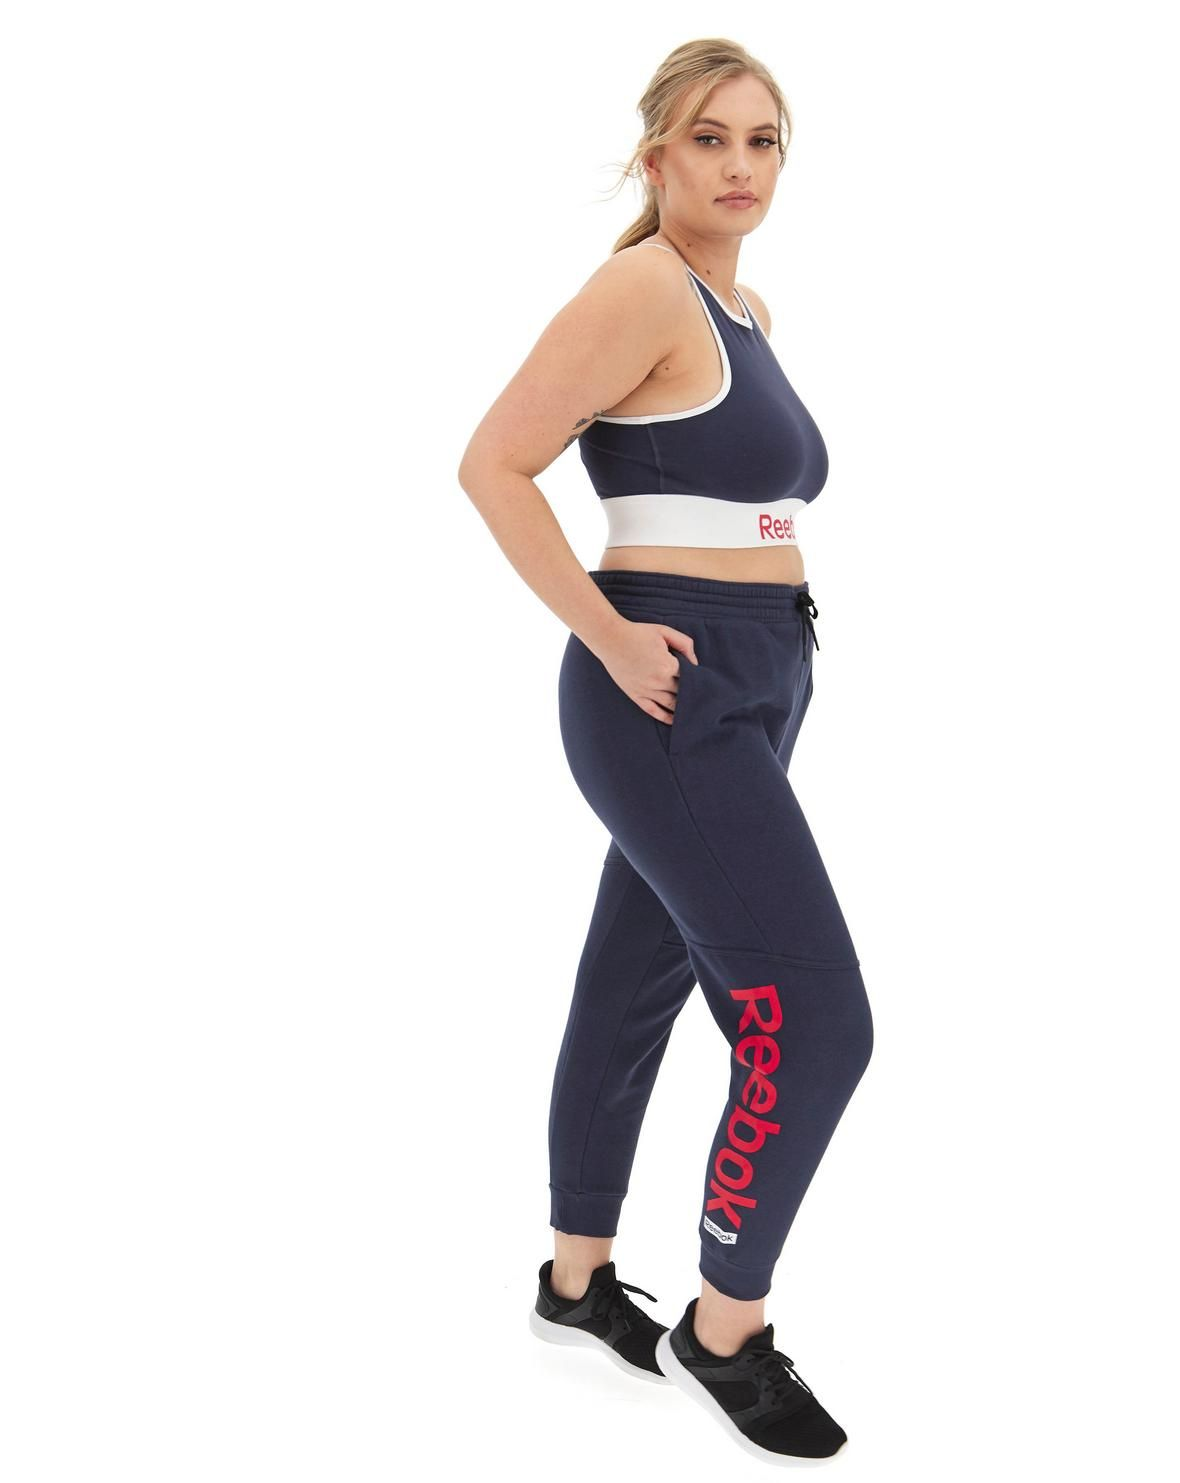 Where to Buy Plus Size Workout Clothes & Activewear in